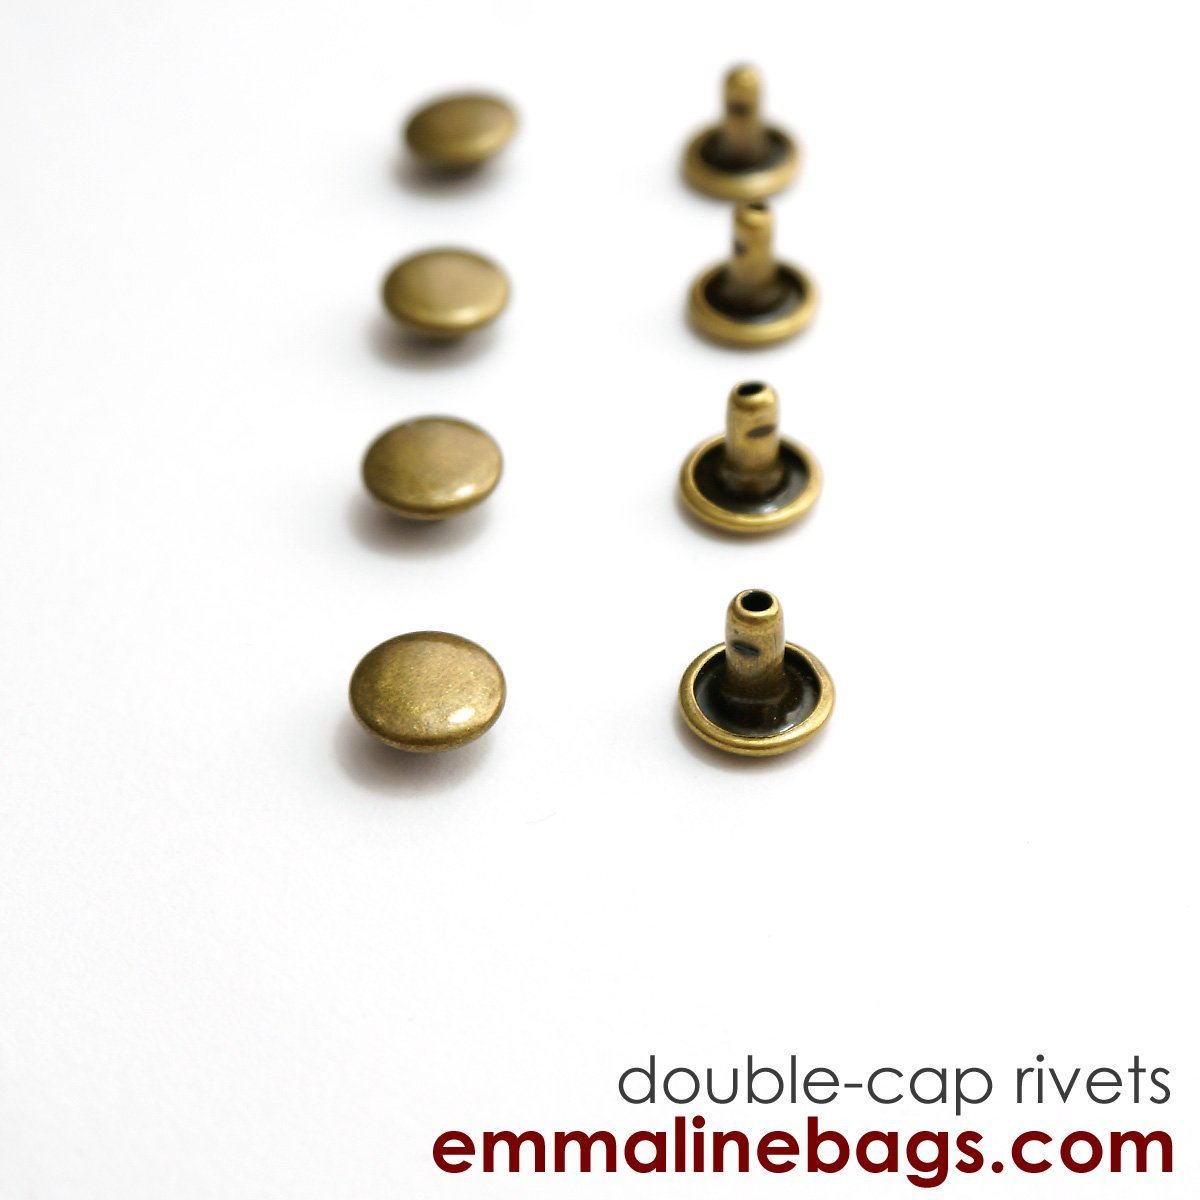 AB Double Cap Rivets Small 50 Pack (8mm Cap x 6mm Post) Antique Brass